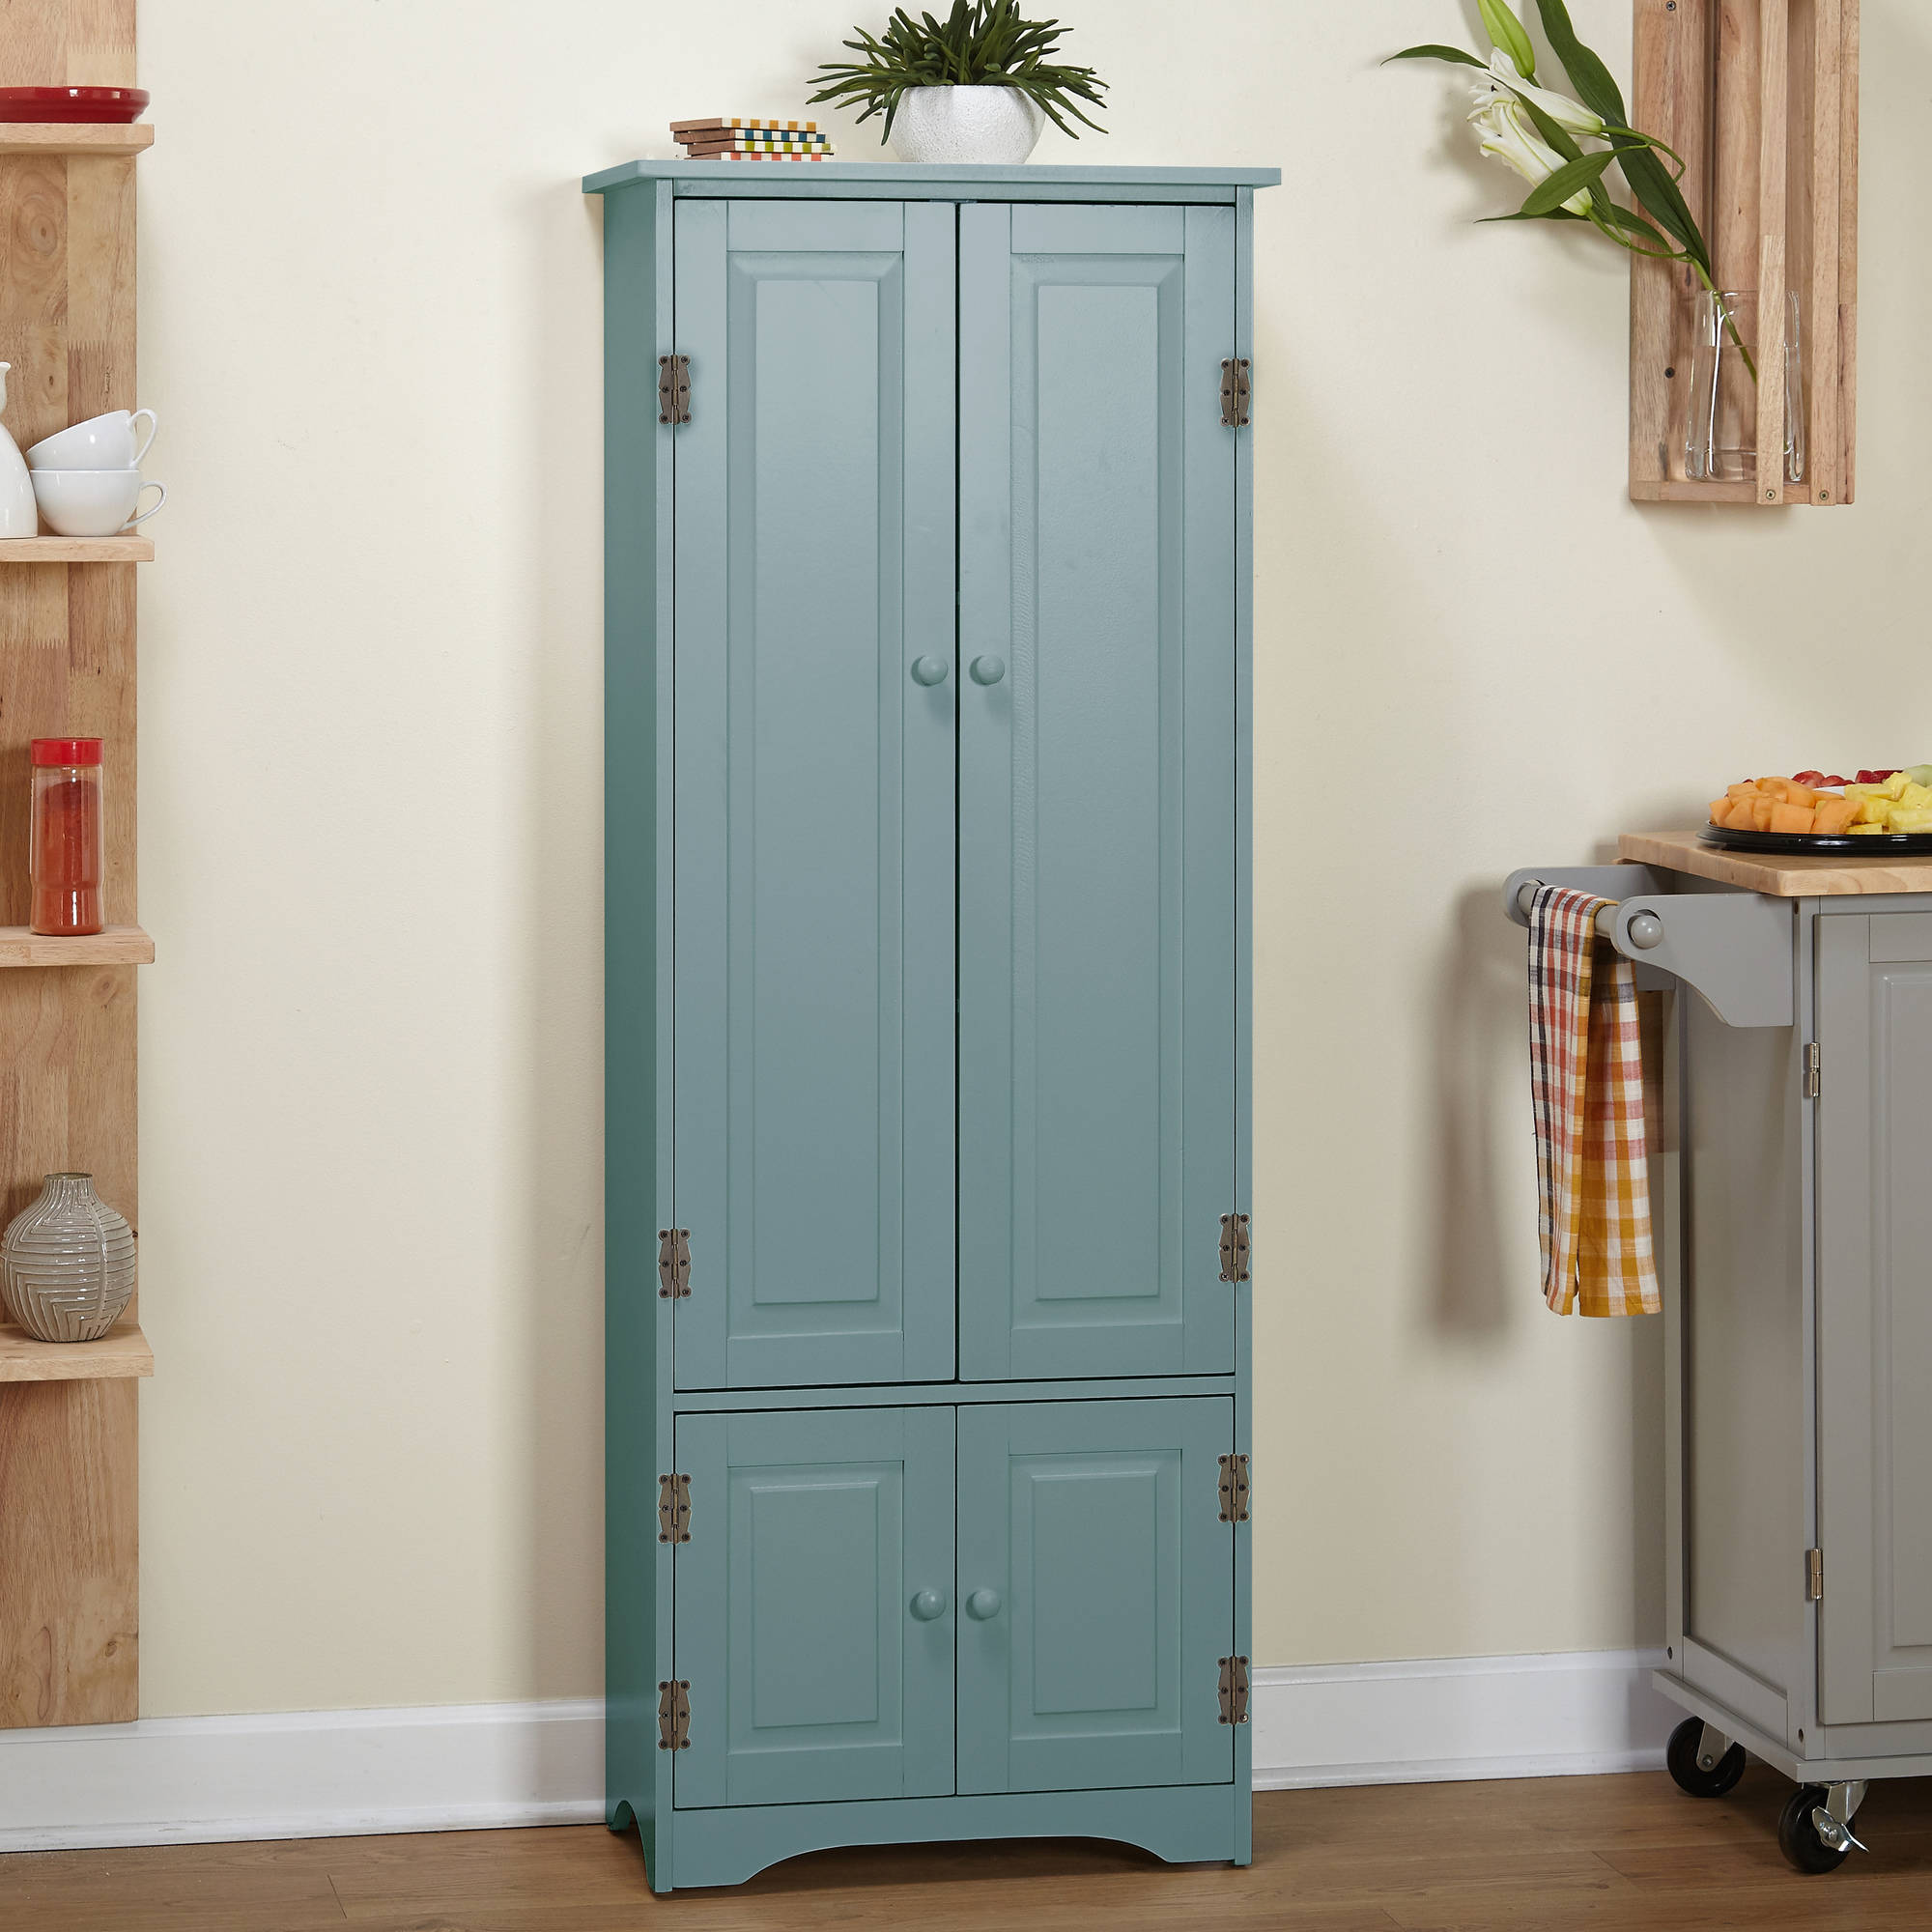 extra tall kitchen cabinets cabinet blue walmart 7118